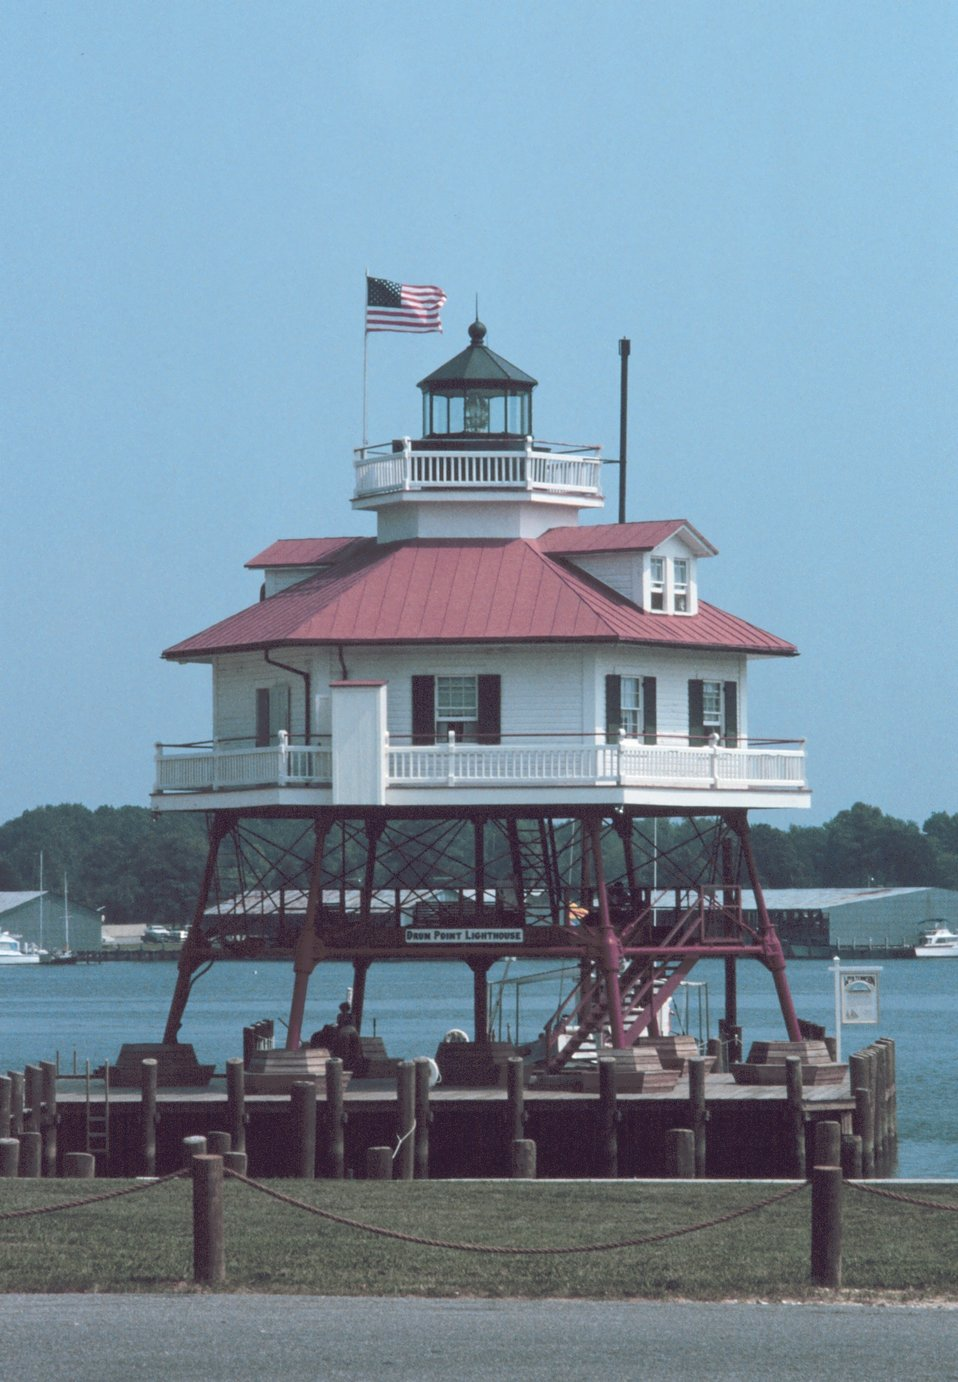 Drum Point Lighthouse, now a museum, stood watch at the mouth of the Patuxent River.